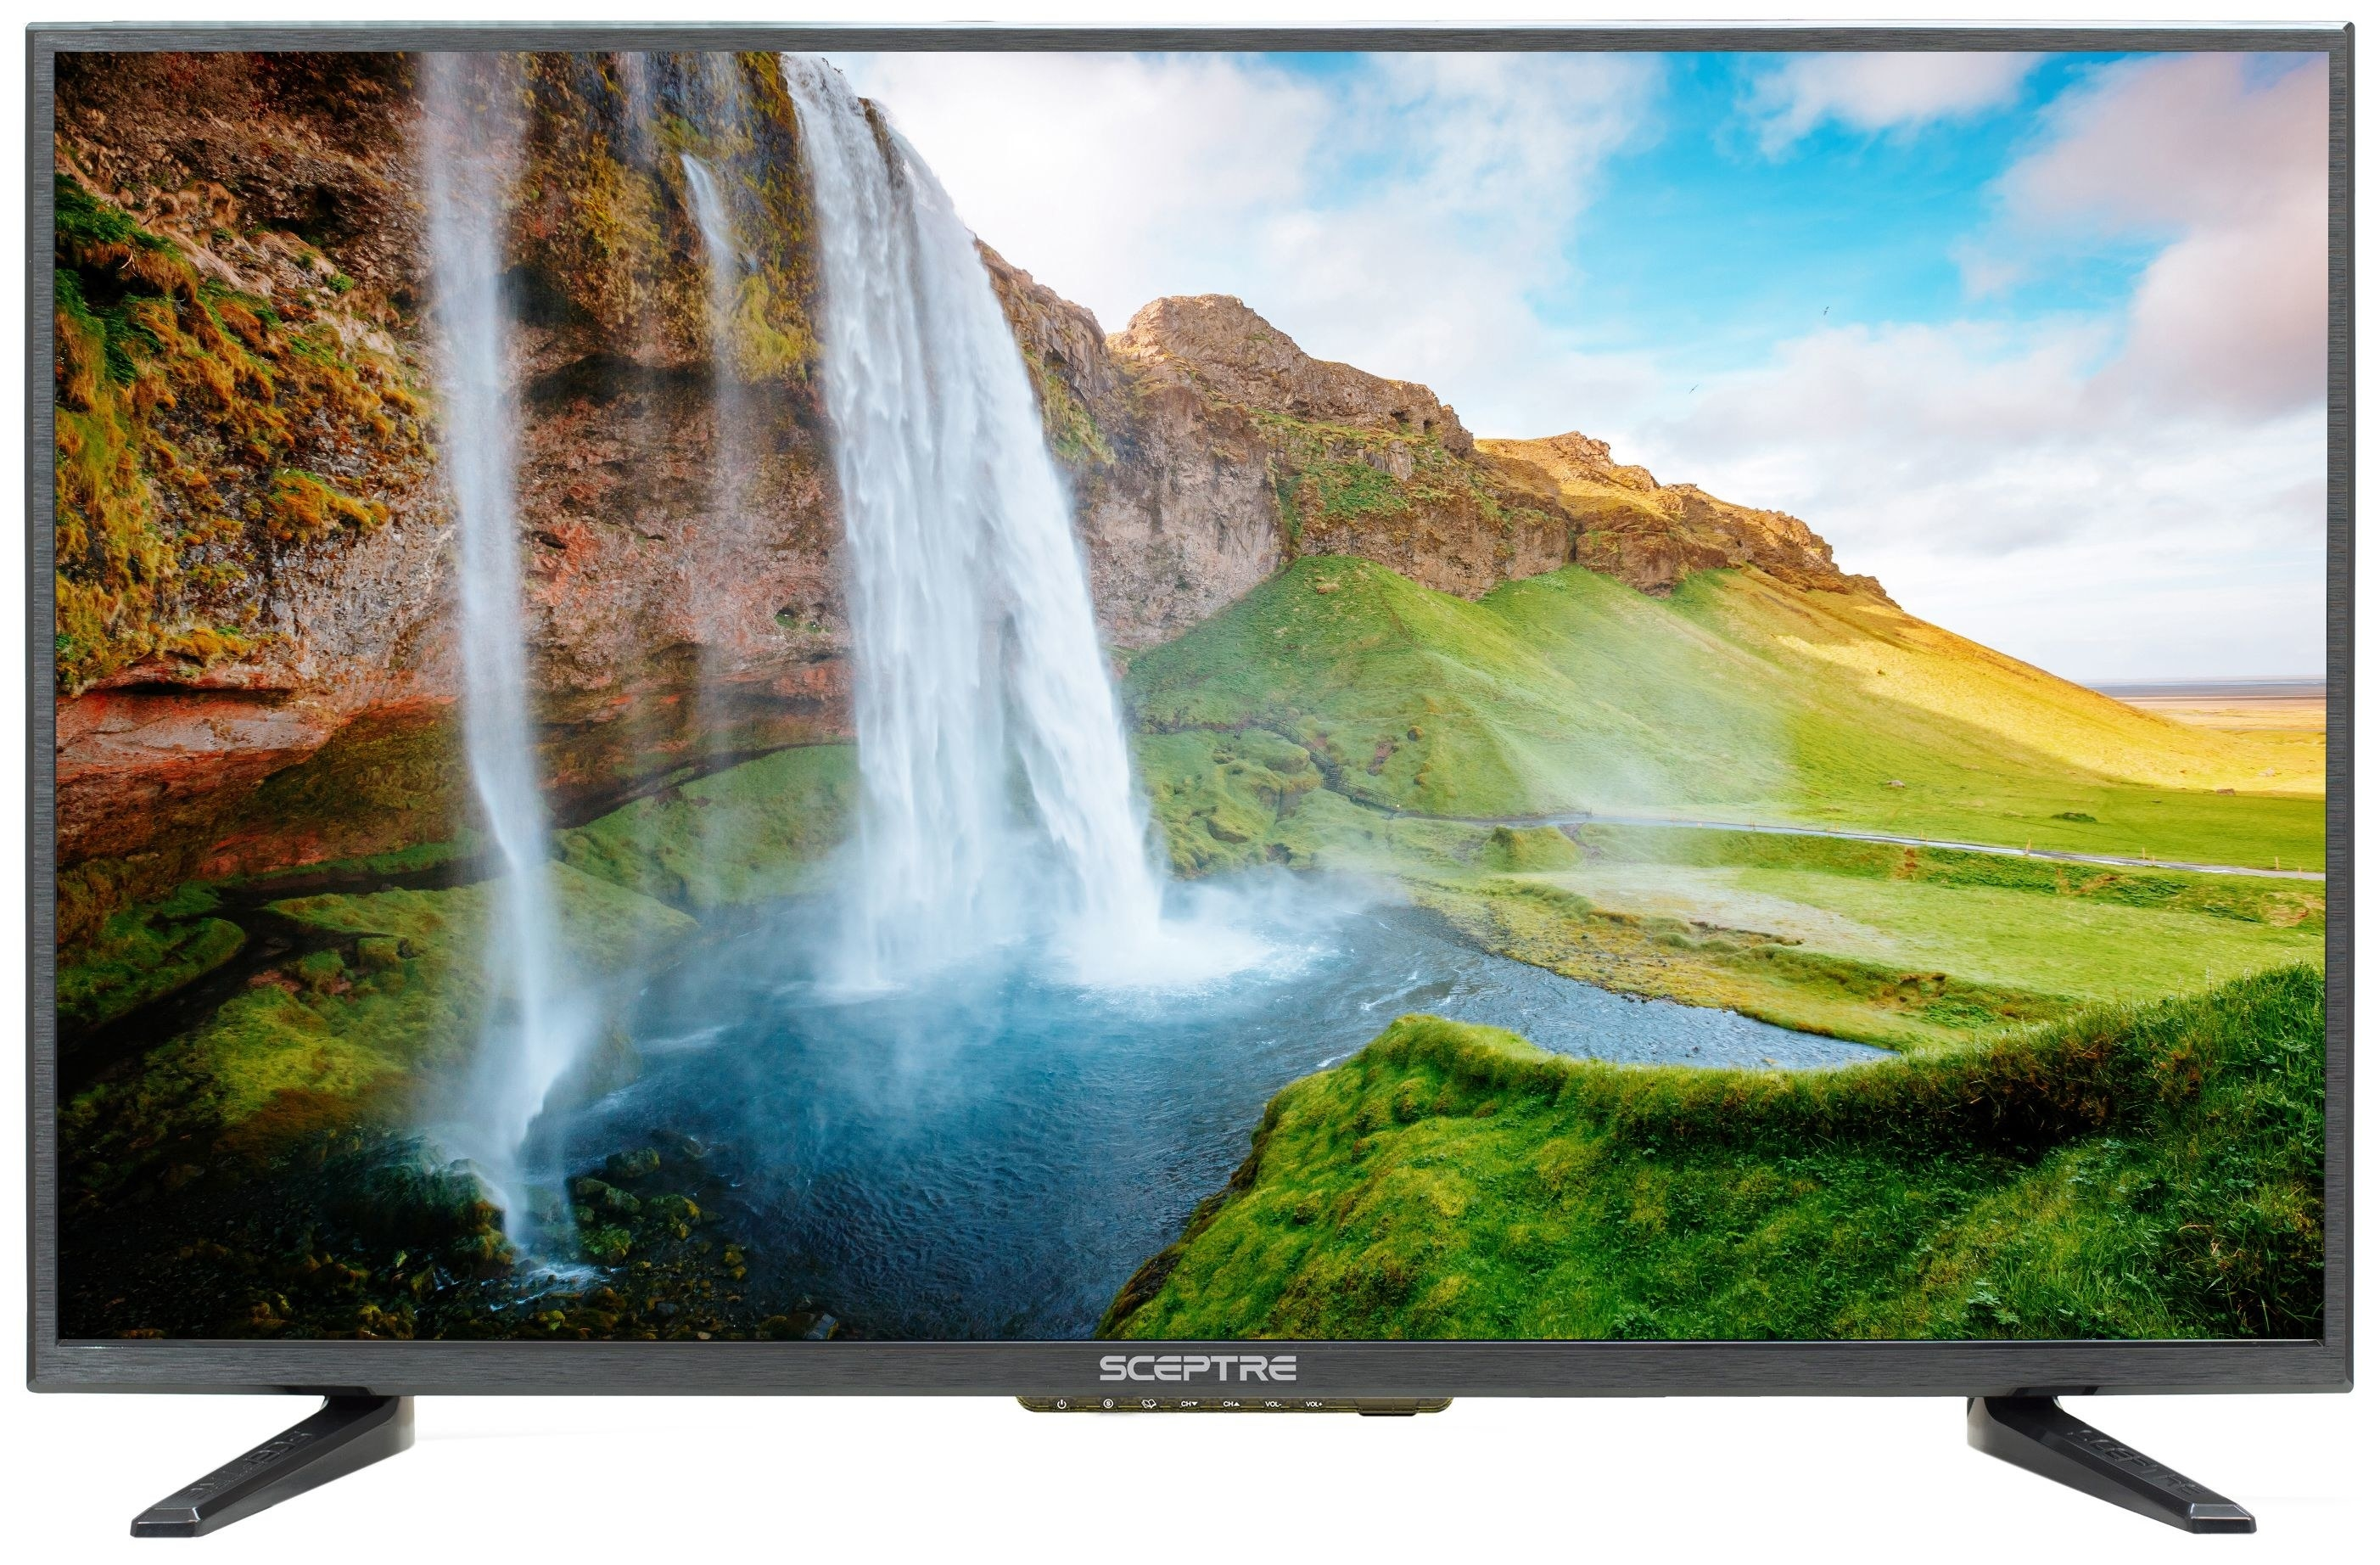 sceptre LED tv with a waterfall backgroun